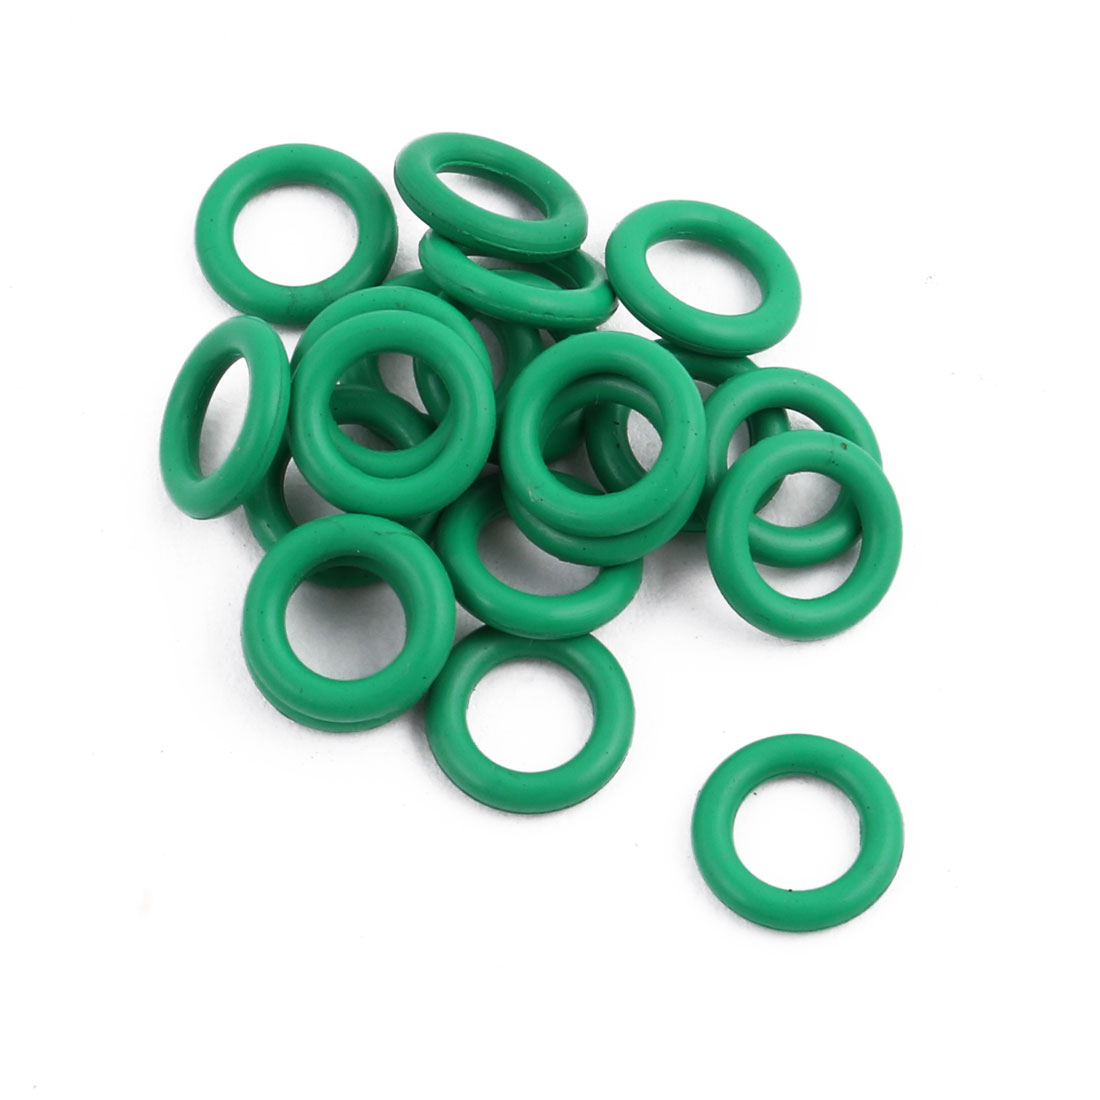 20pcs Green Round Nitrile Butadiene Rubber NBR O-Ring 7.5mm OD 1.5mm Width